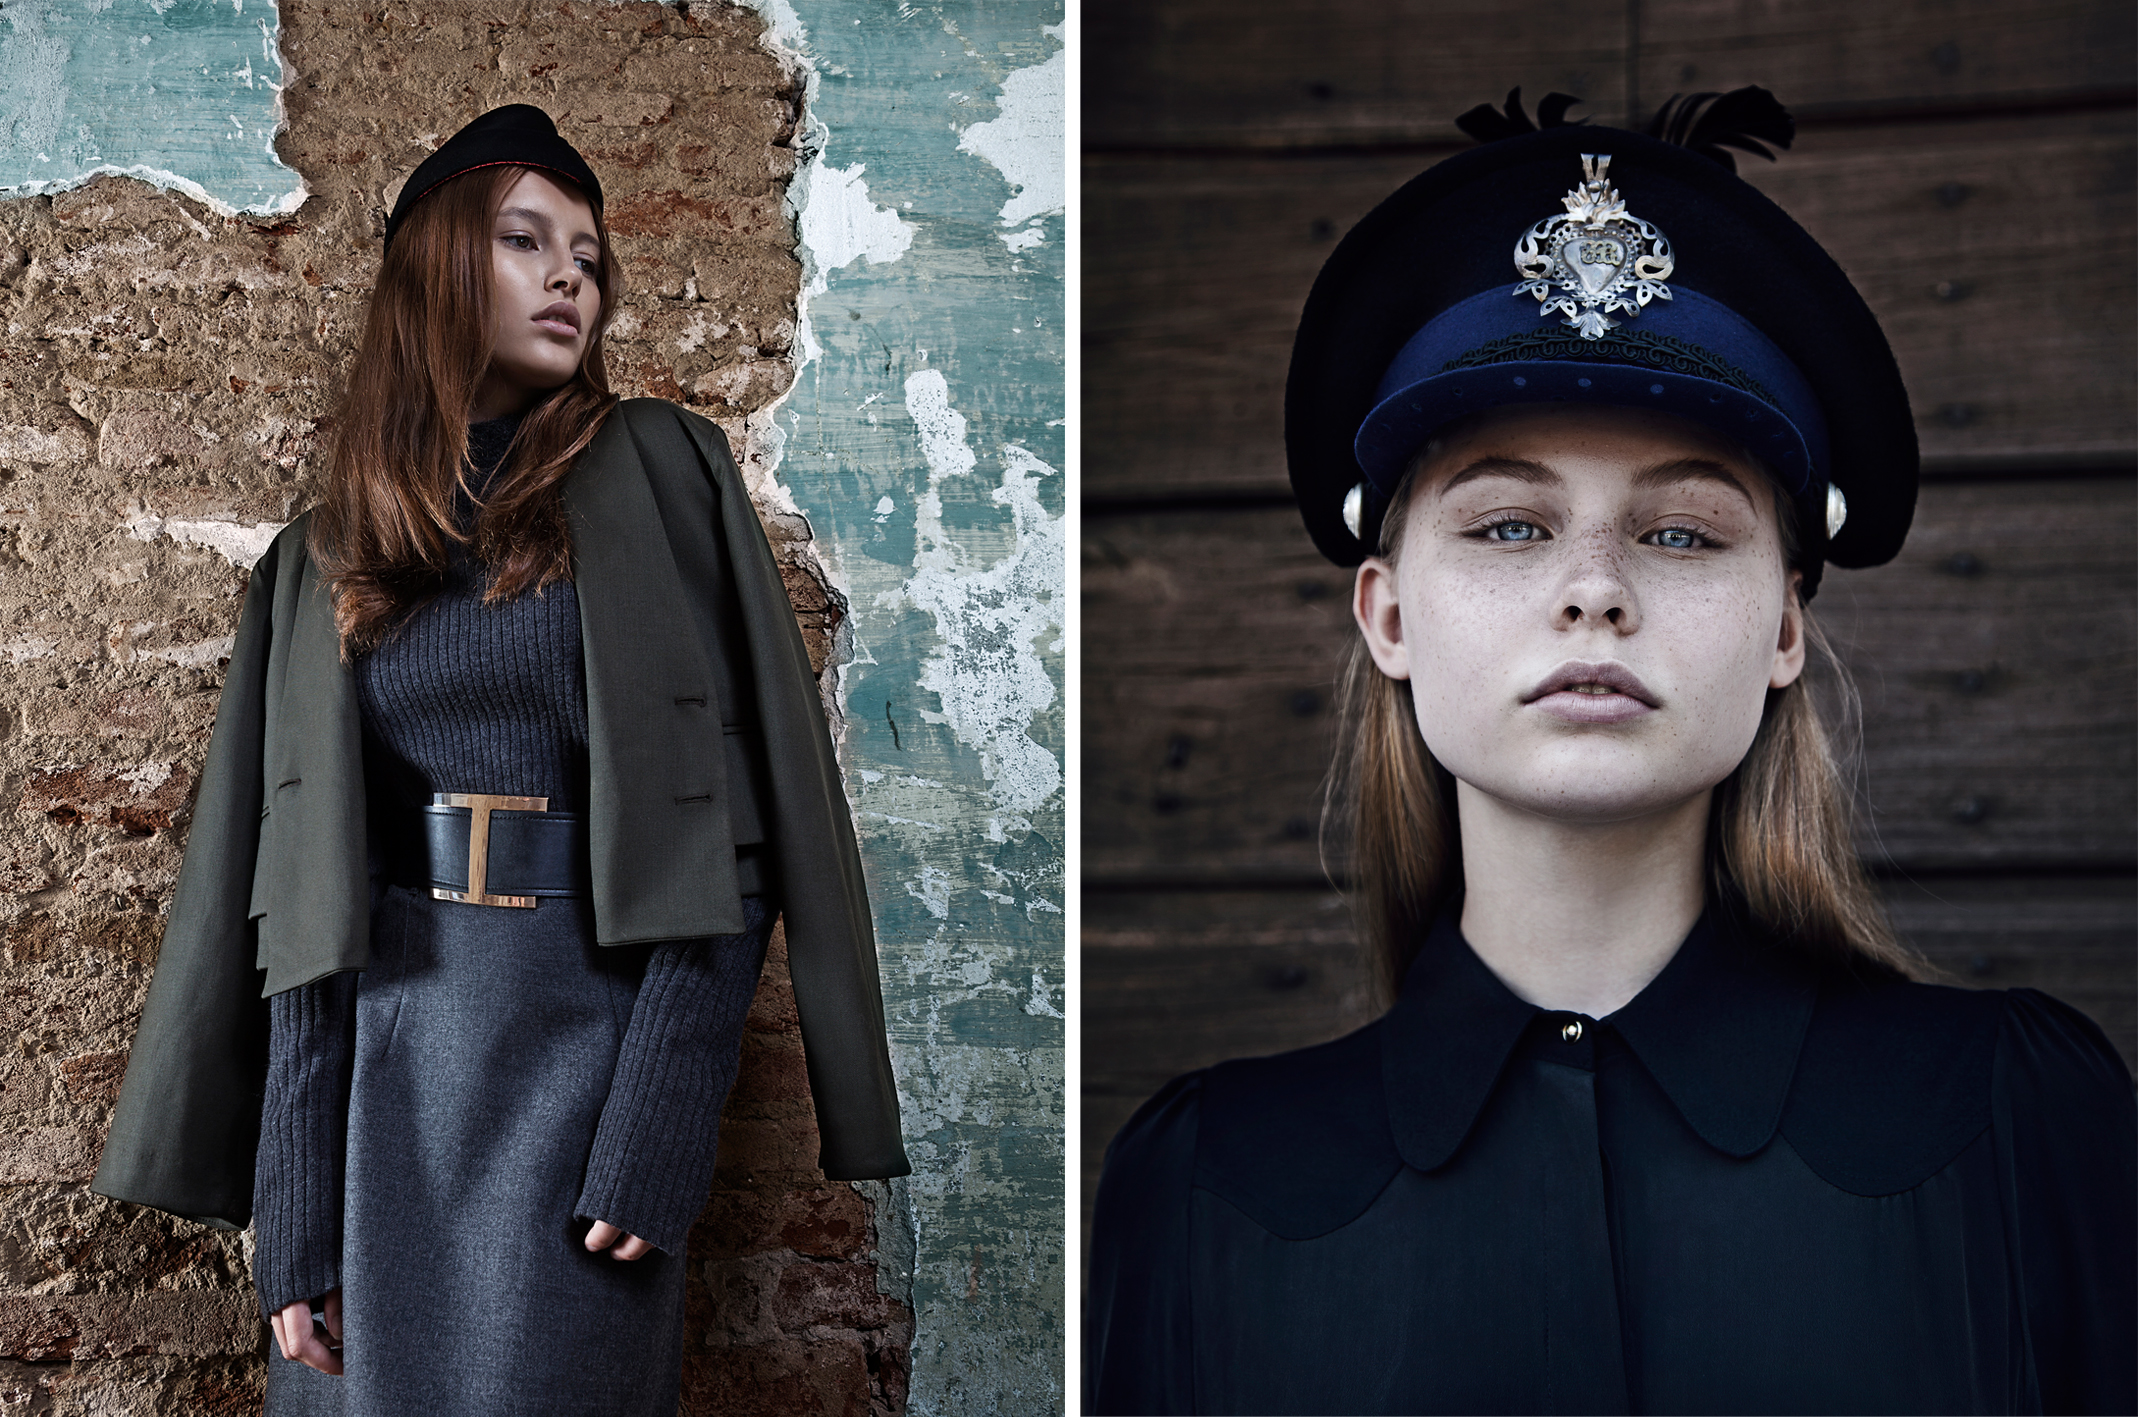 New Model Army I The Cube Magazine I Styled by Allegra Ghiloni